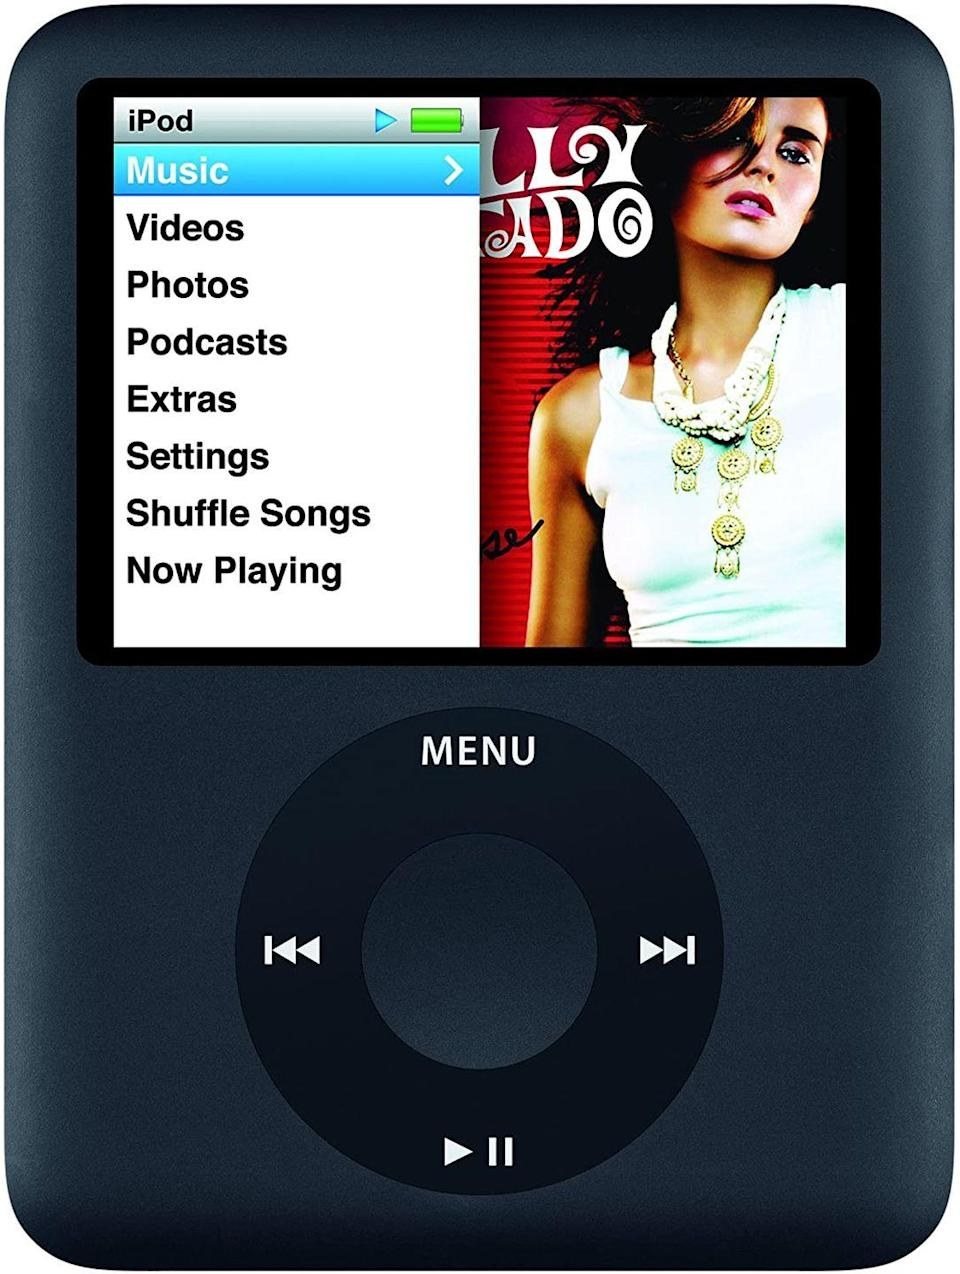 "<p>The life-changing music device doesn't go for much as you would think. But if you never opened yours from the package (who hurt you?!), a nice <a href=""https://www.ebay.com/itm/New-Rare-Factory-Sealed-Apple-iPod-nano-8-GB-Blue-3rd-Generation-MB249LL-A/274360876086?epid=82738535&hash=item3fe12ebc36:g:eJ0AAOSw4kNetted"" rel=""nofollow noopener"" target=""_blank"" data-ylk=""slk:$1,000"" class=""link rapid-noclick-resp"">$1,000</a> could be coming to your bank account in the future. </p>"